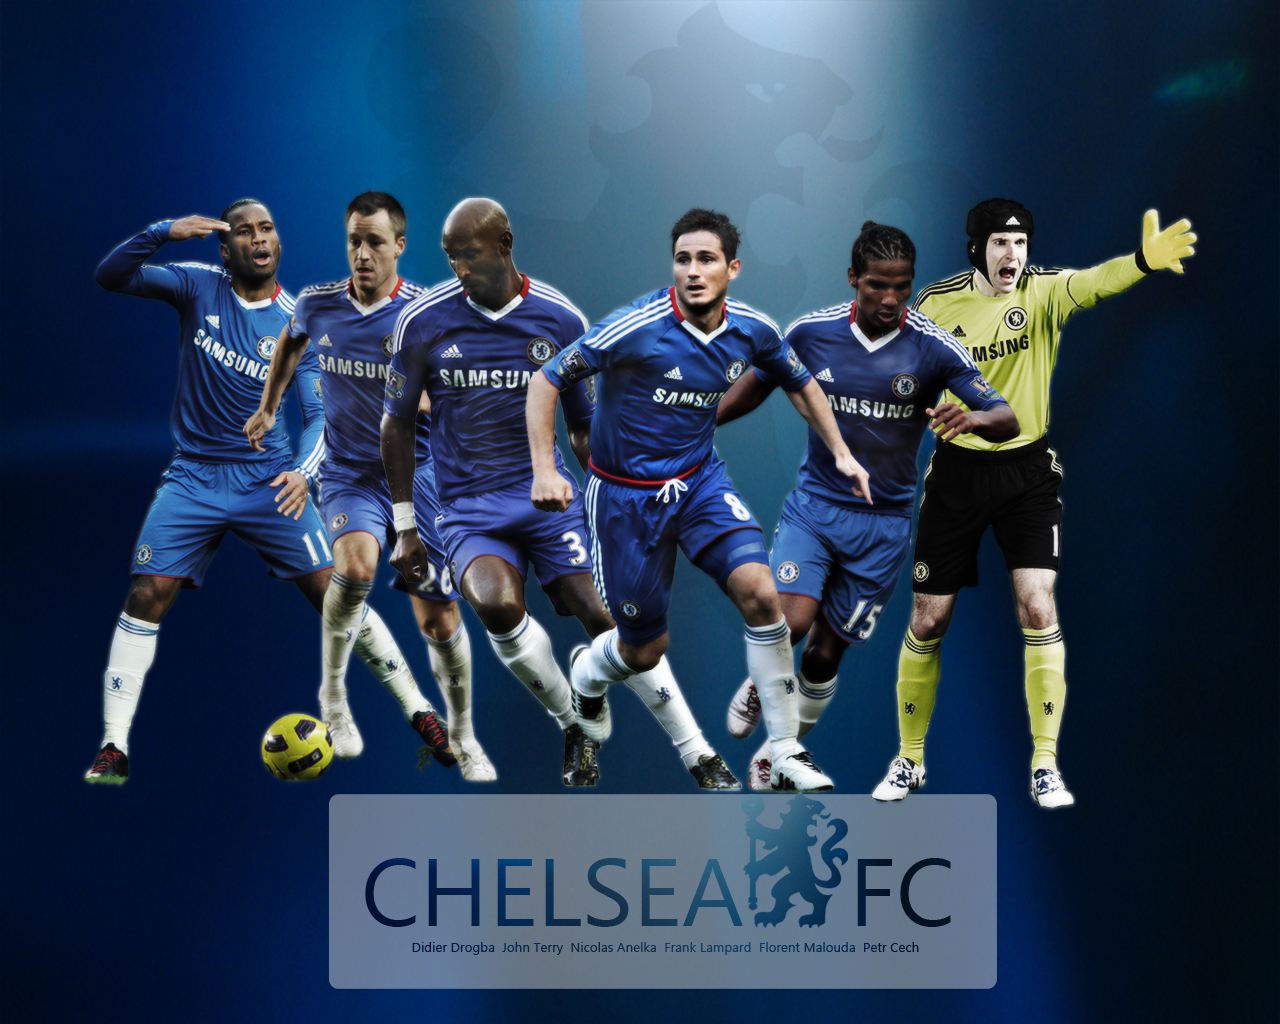 Chelsea FC Team Wallpaper Wallpoh 1280x1024